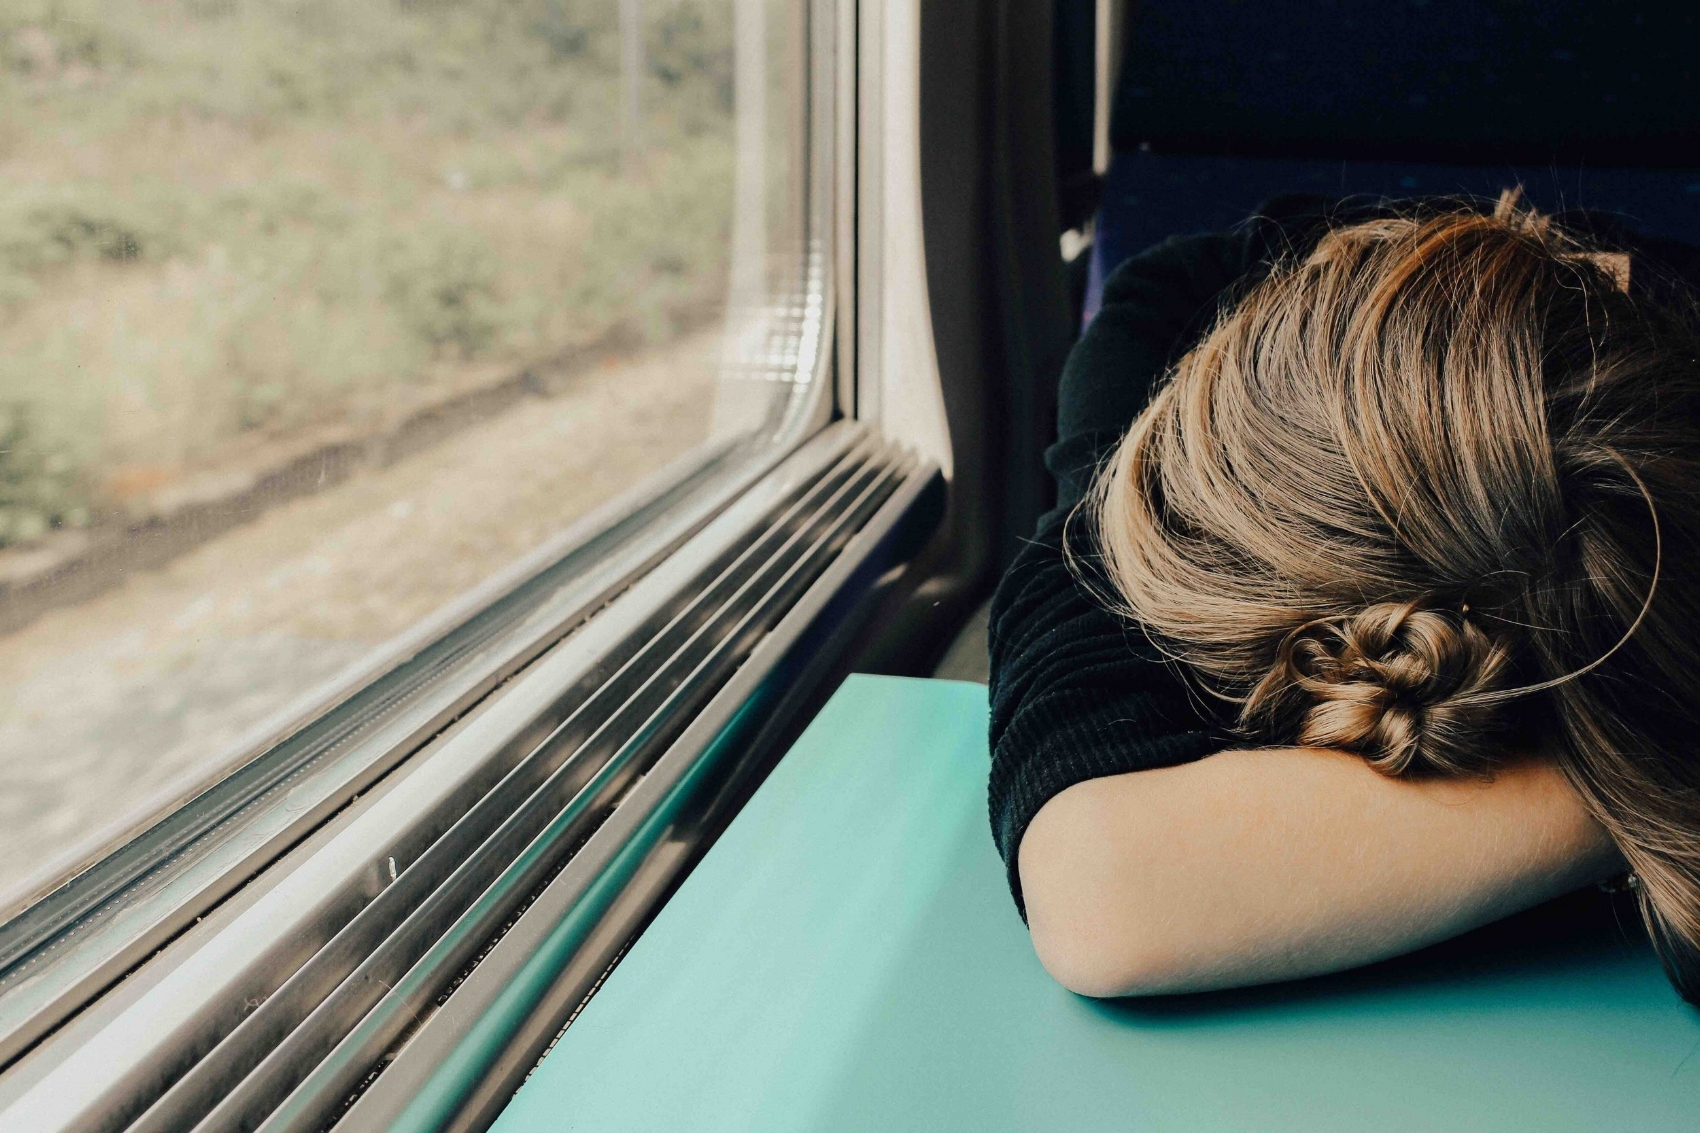 Explore Your Mind: White, brunette woman on a train, with her head resting on a blue table